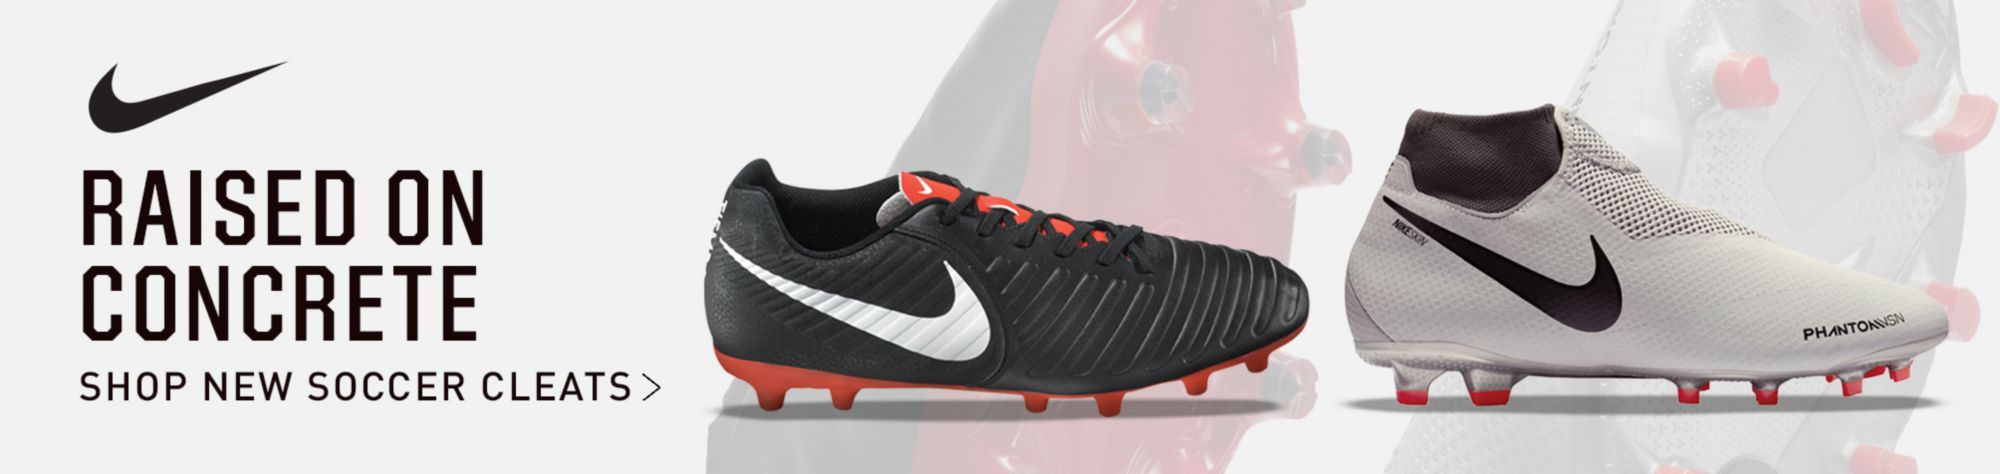 Shop New Soccer Cleats